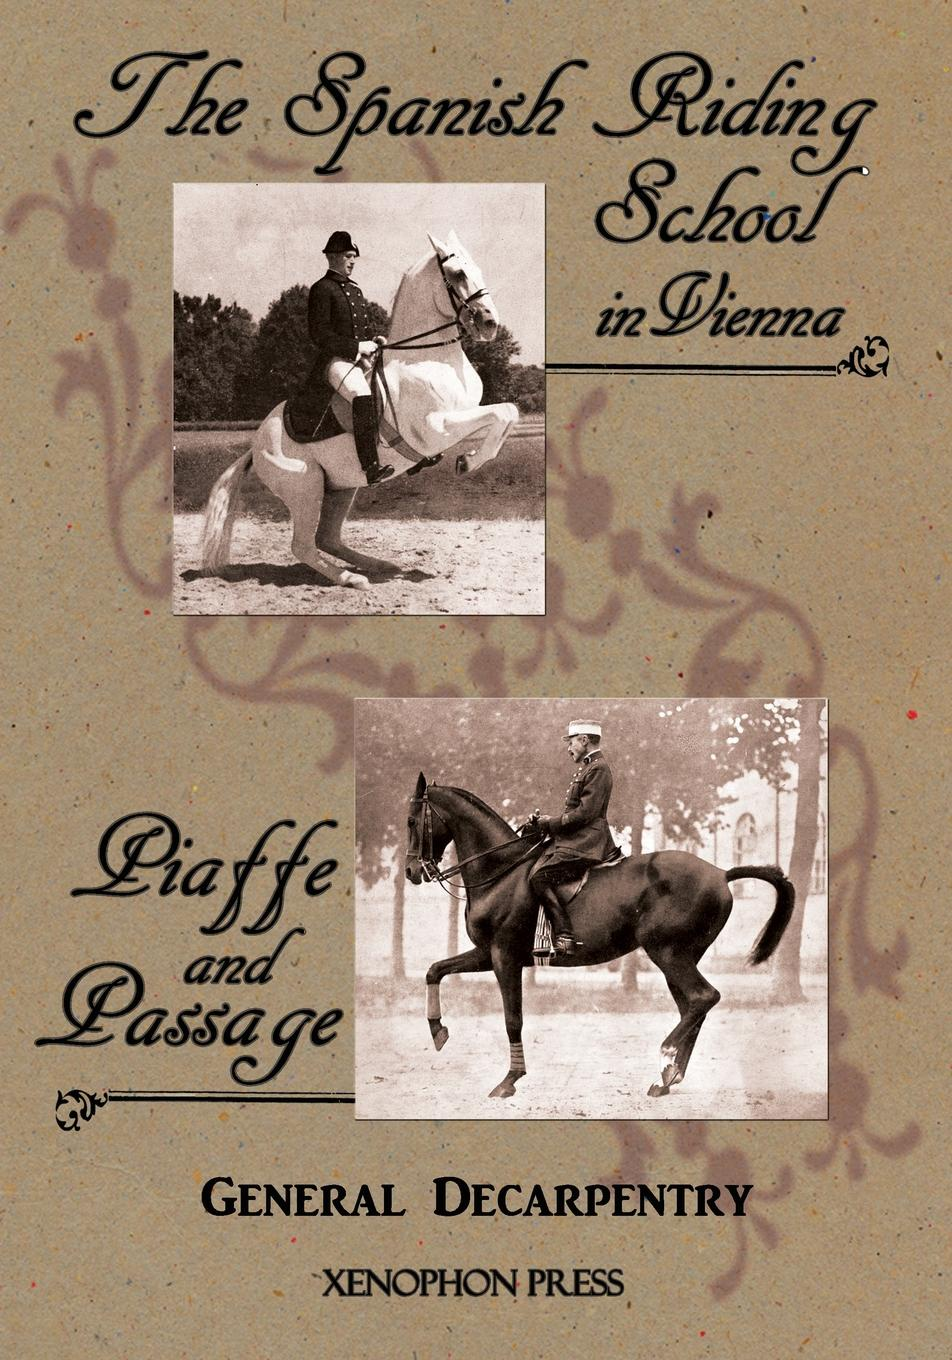 General Albert Decarpentry 'Spanish Riding School' and 'Piaffe and Passage' by Decarpentry татьяна олива моралес the comparative typology ofspanish and english texts story and anecdotes for reading translating and retelling inspanish and english adapted by © linguistic rescue method level a1 a2